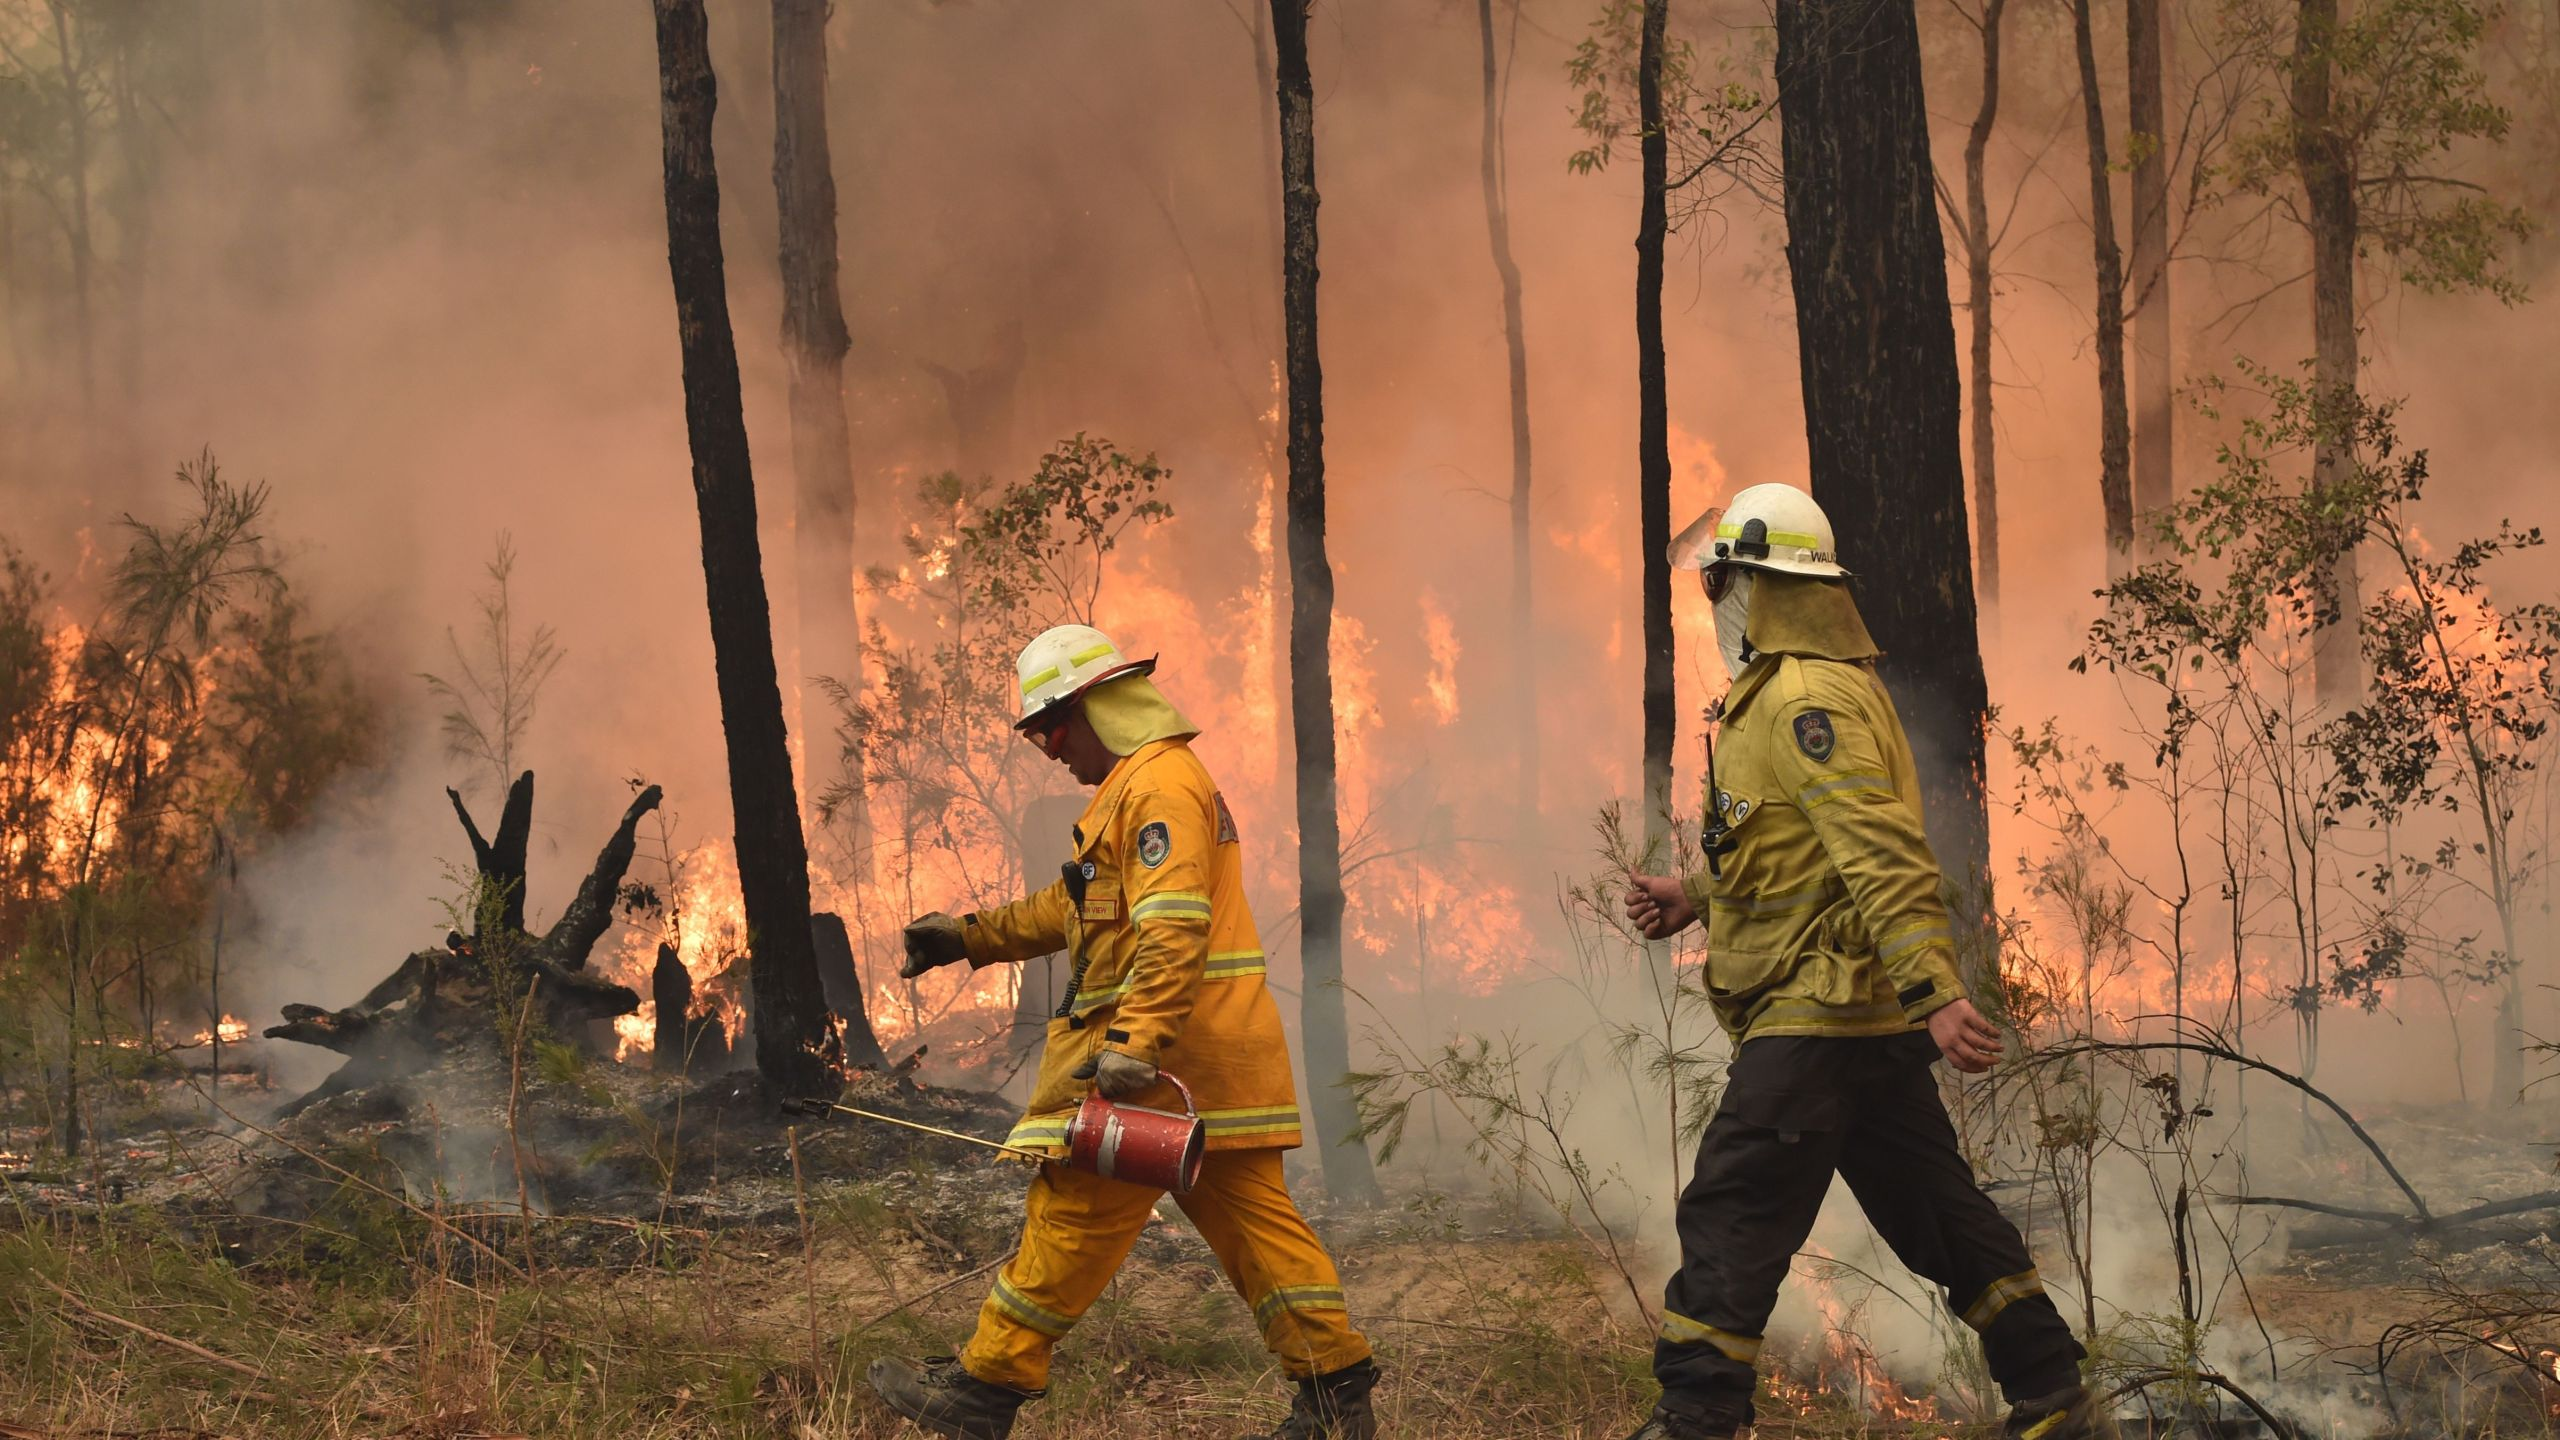 Firefighters create a back burn ahead of a fire front in the New South Wales town of Jerrawangala on Jan. 1, 2020. A major operation to reach thousands of people stranded in fire-ravaged seaside towns was underway after deadly bushfires ripped through popular tourist spots and rural areas, leaving at least eight people dead. (Credit: PETER PARKS/AFP via Getty Images)